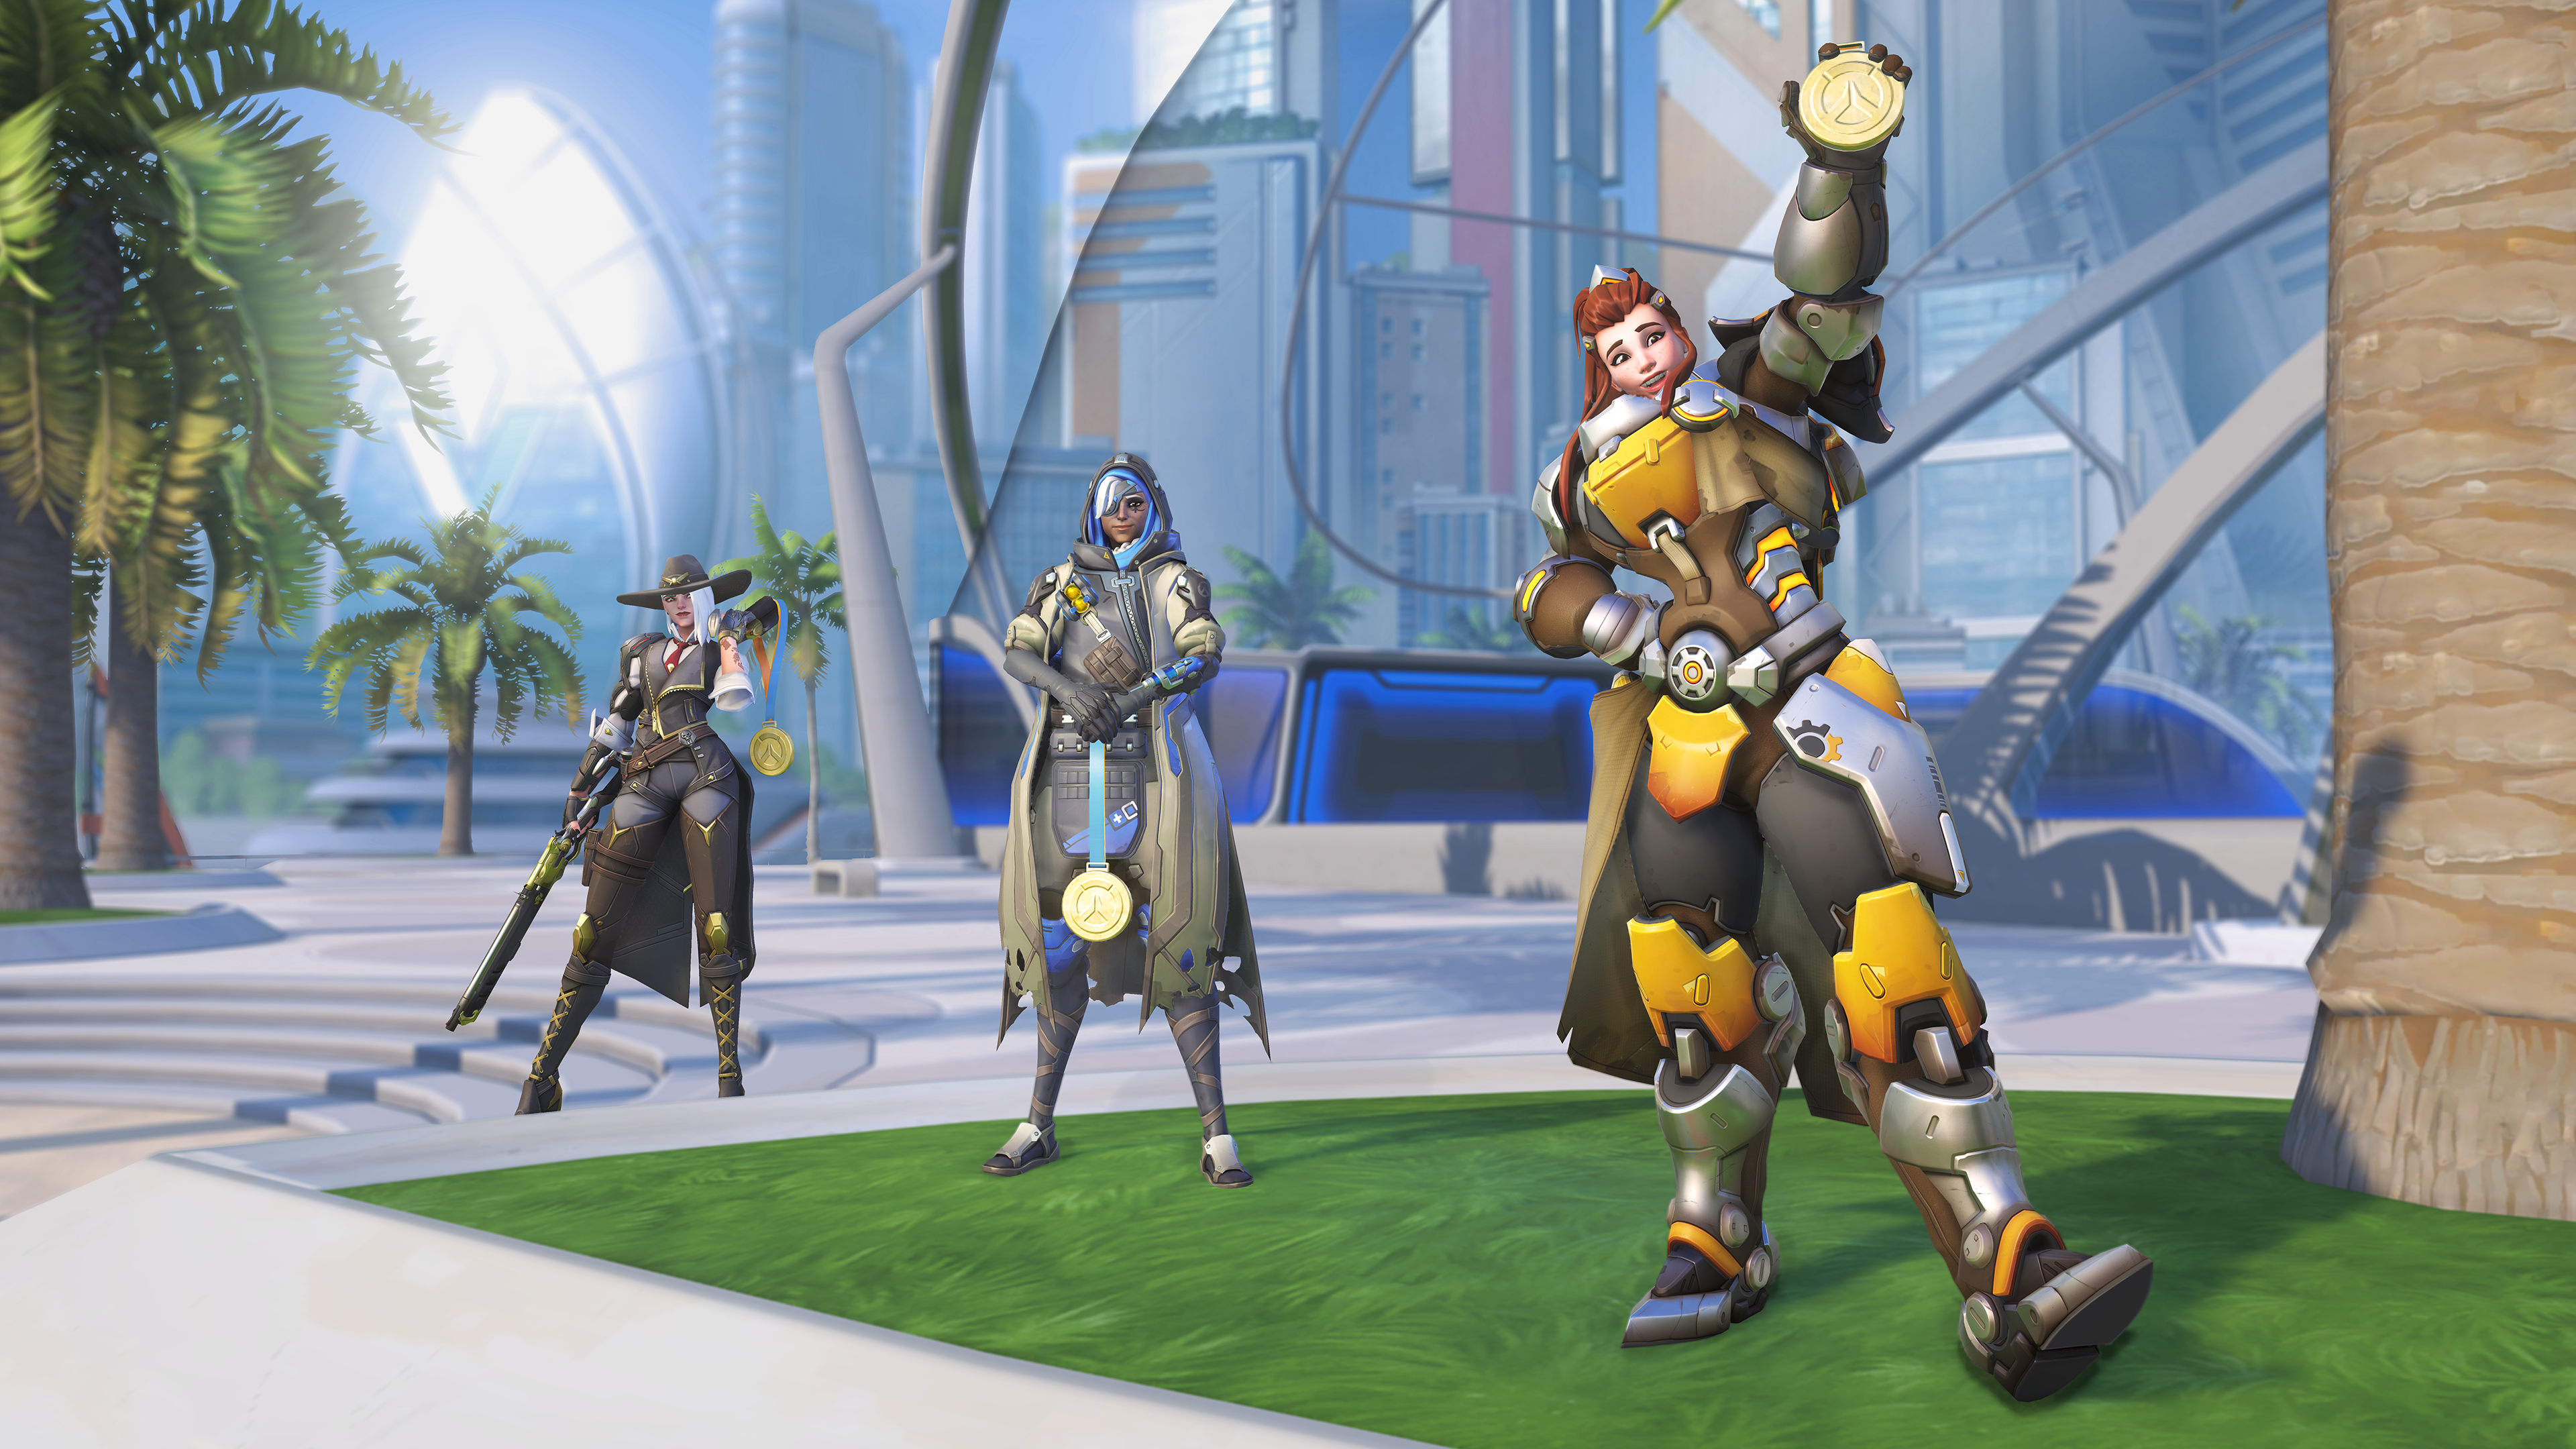 Overwatch Summer Games 2019: new skins, sprays, and more